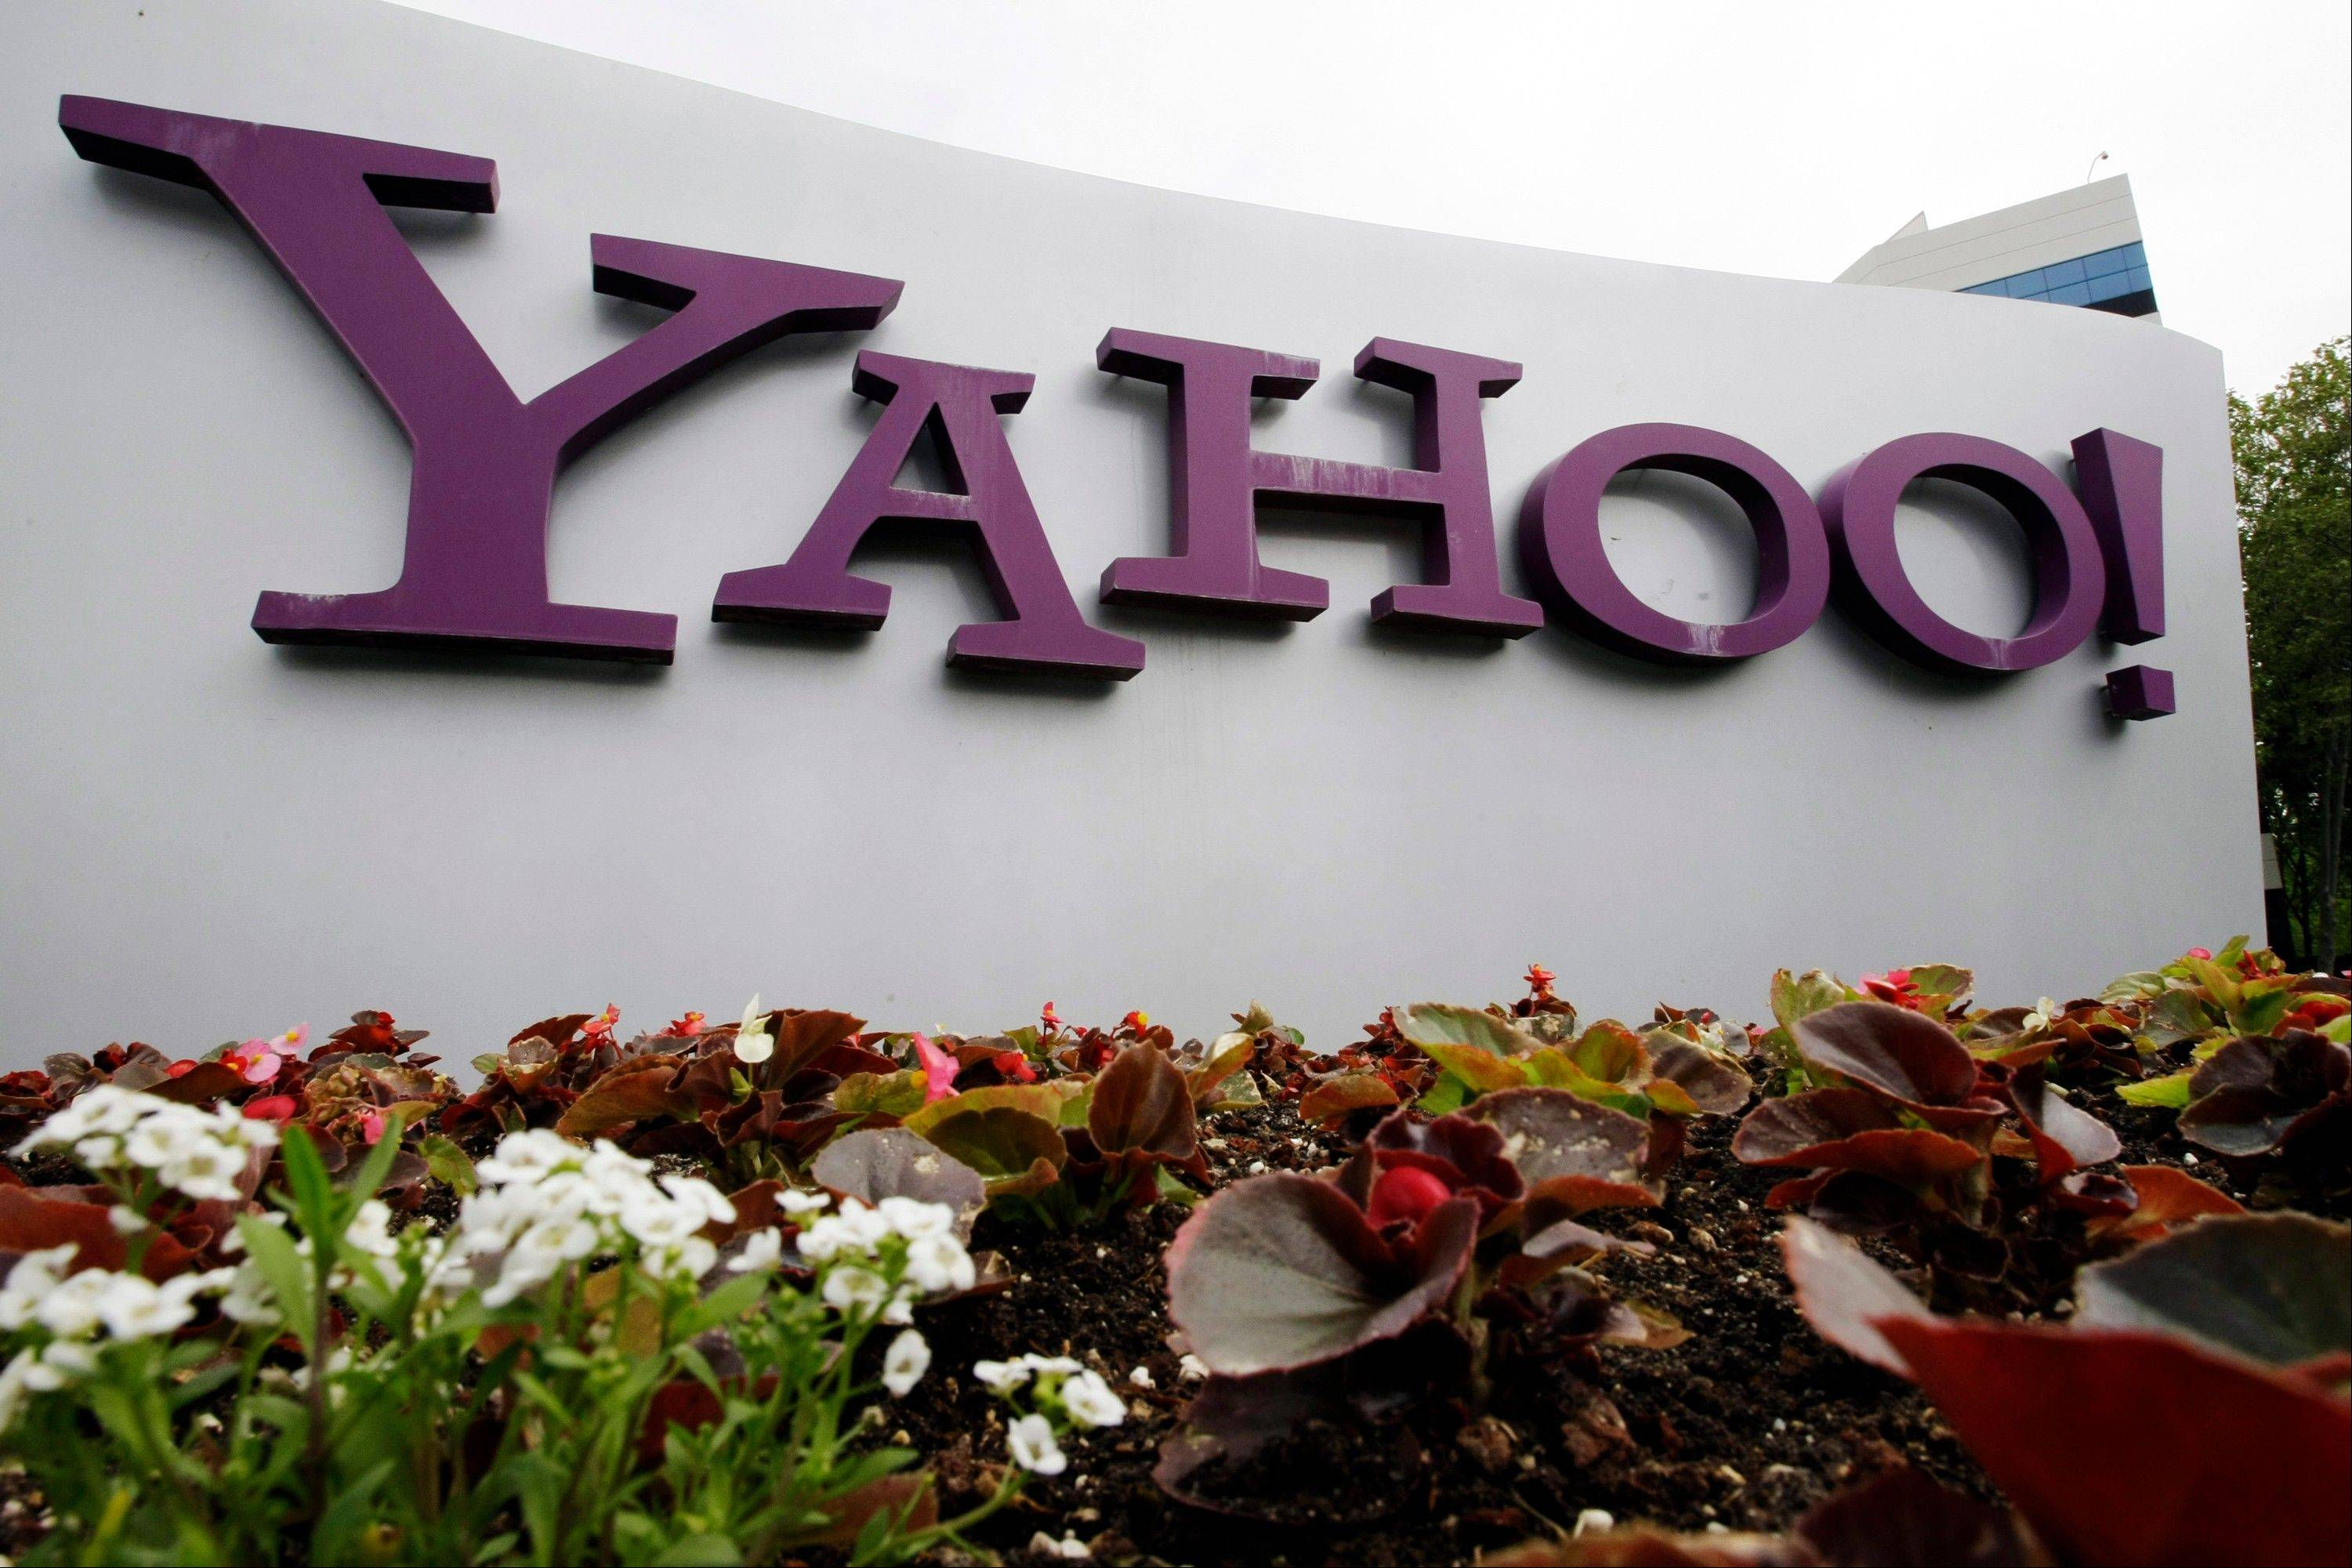 Yahoo has pledged to encrypt all of its internal network communications by the end of the first quarter of 2014. It�s a timely step for Yahoo, which has mostly lagged behind other tech companies when it comes to user privacy.